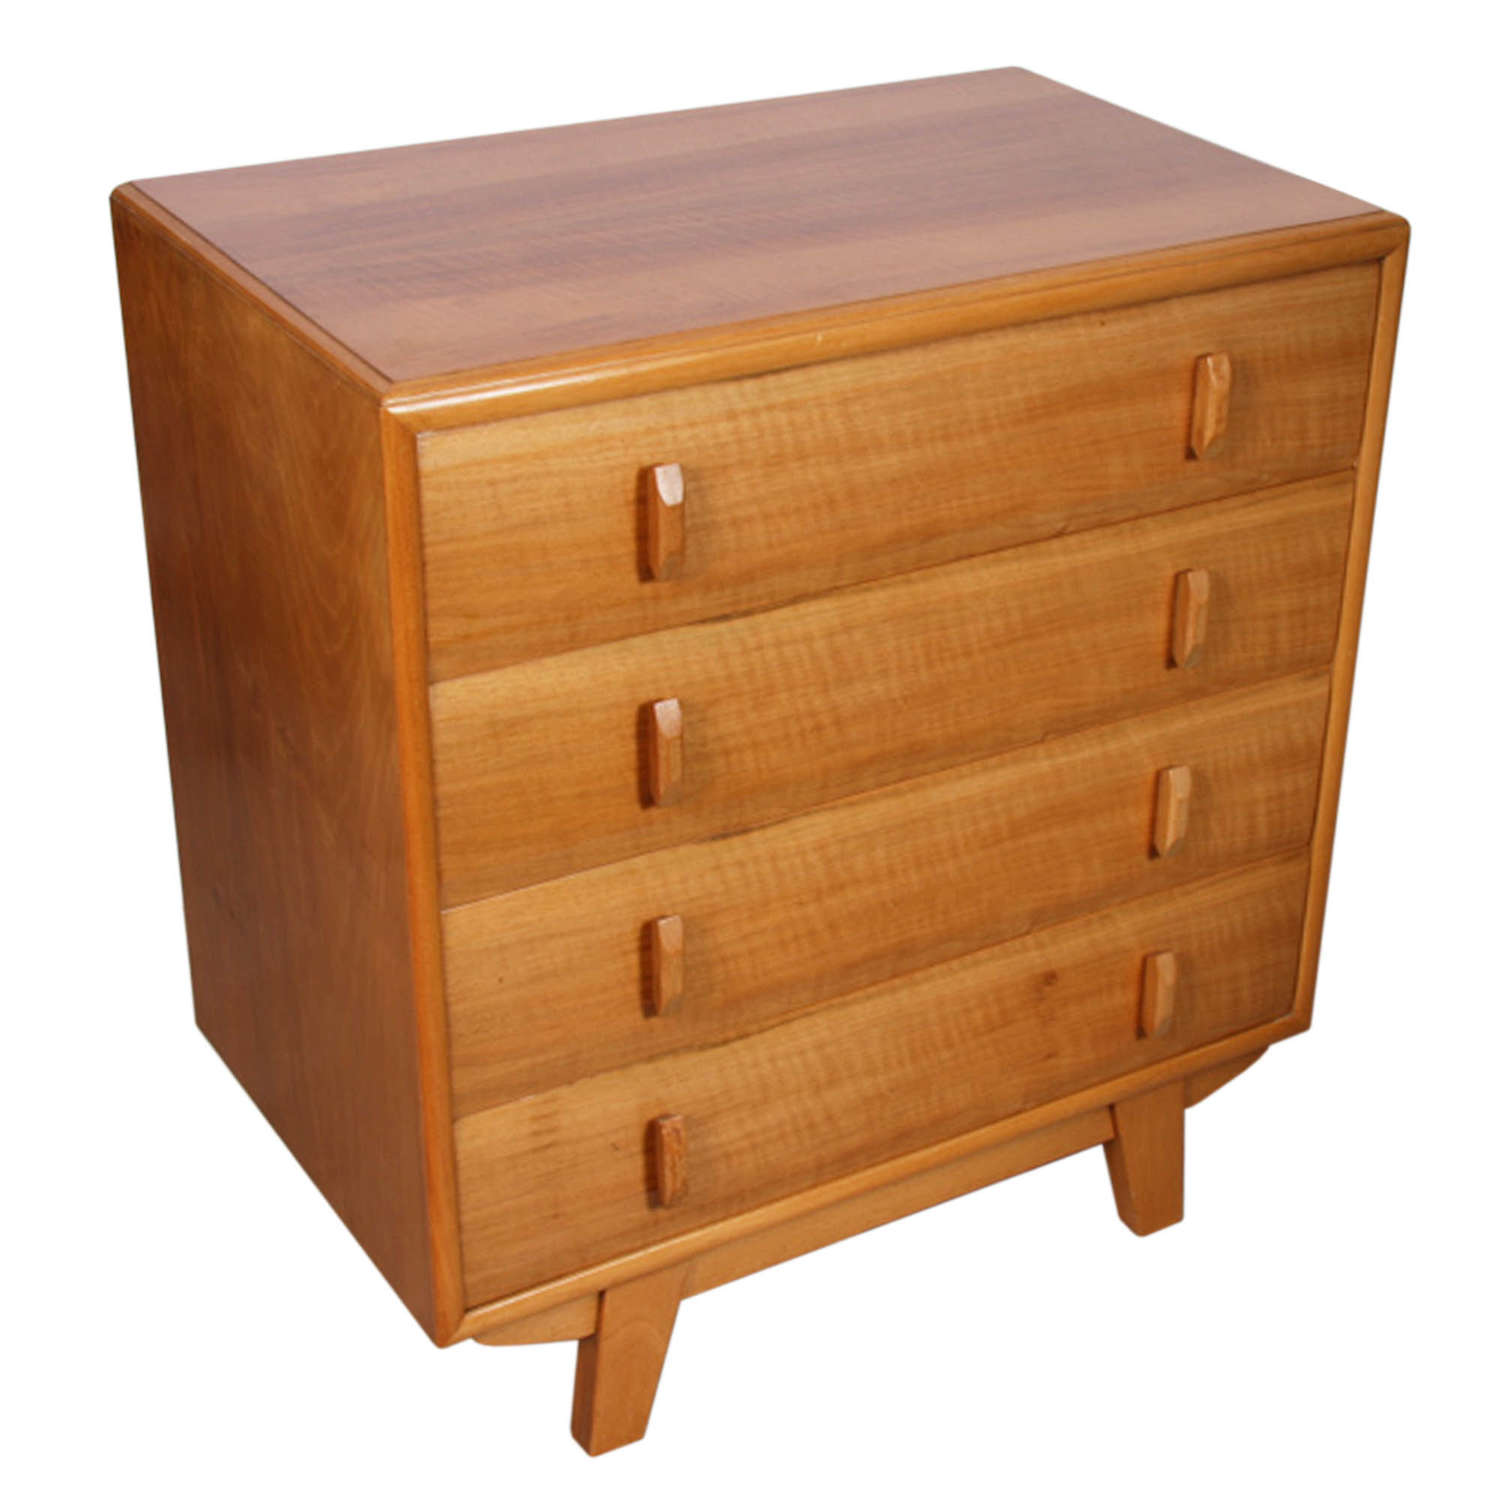 Heal's 1950s Chest of Drawers